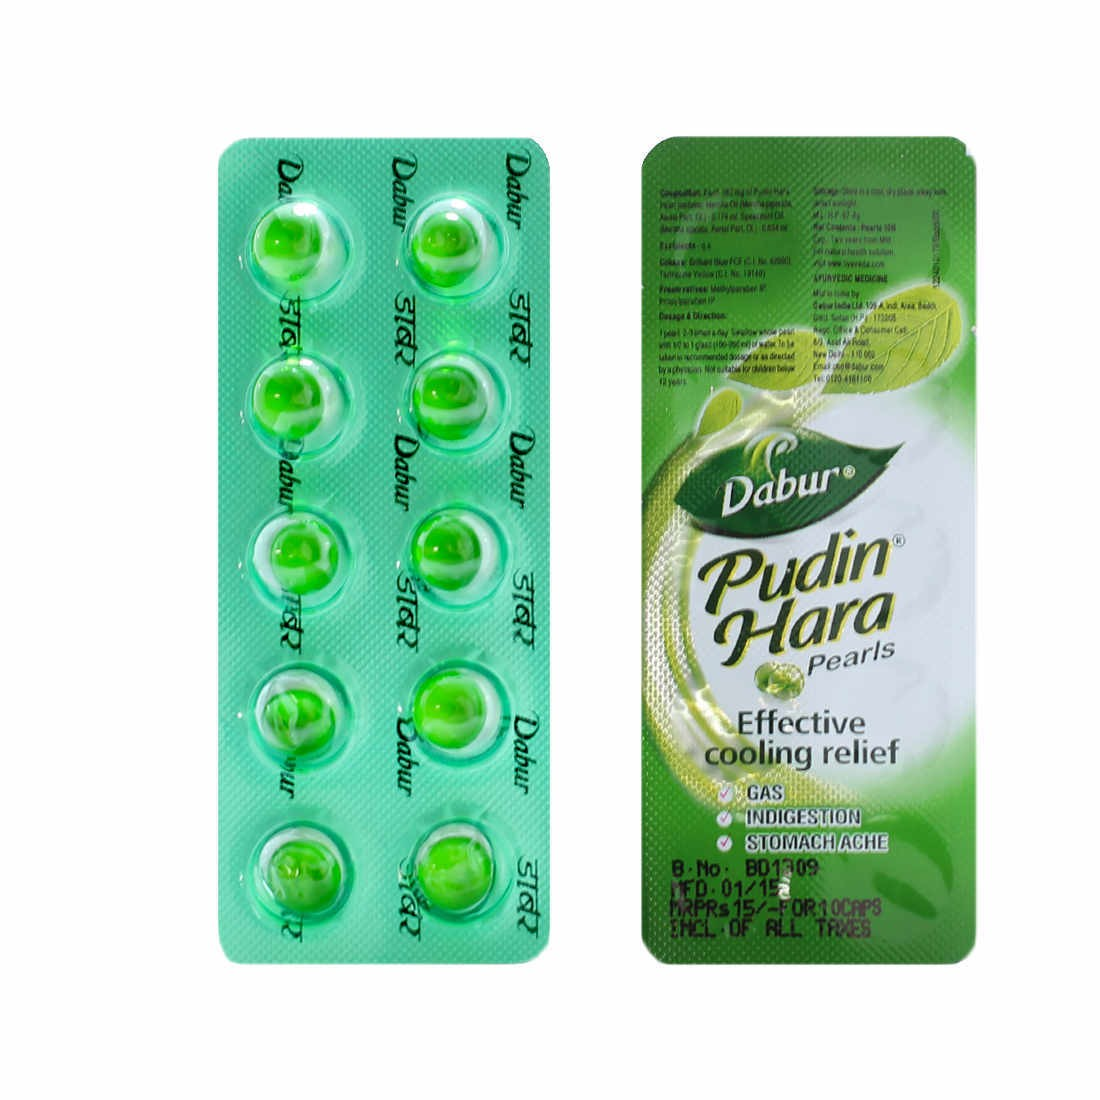 PUDIN HARA CAPSULES ( 1 STRIP OF 10 CAPSULES )